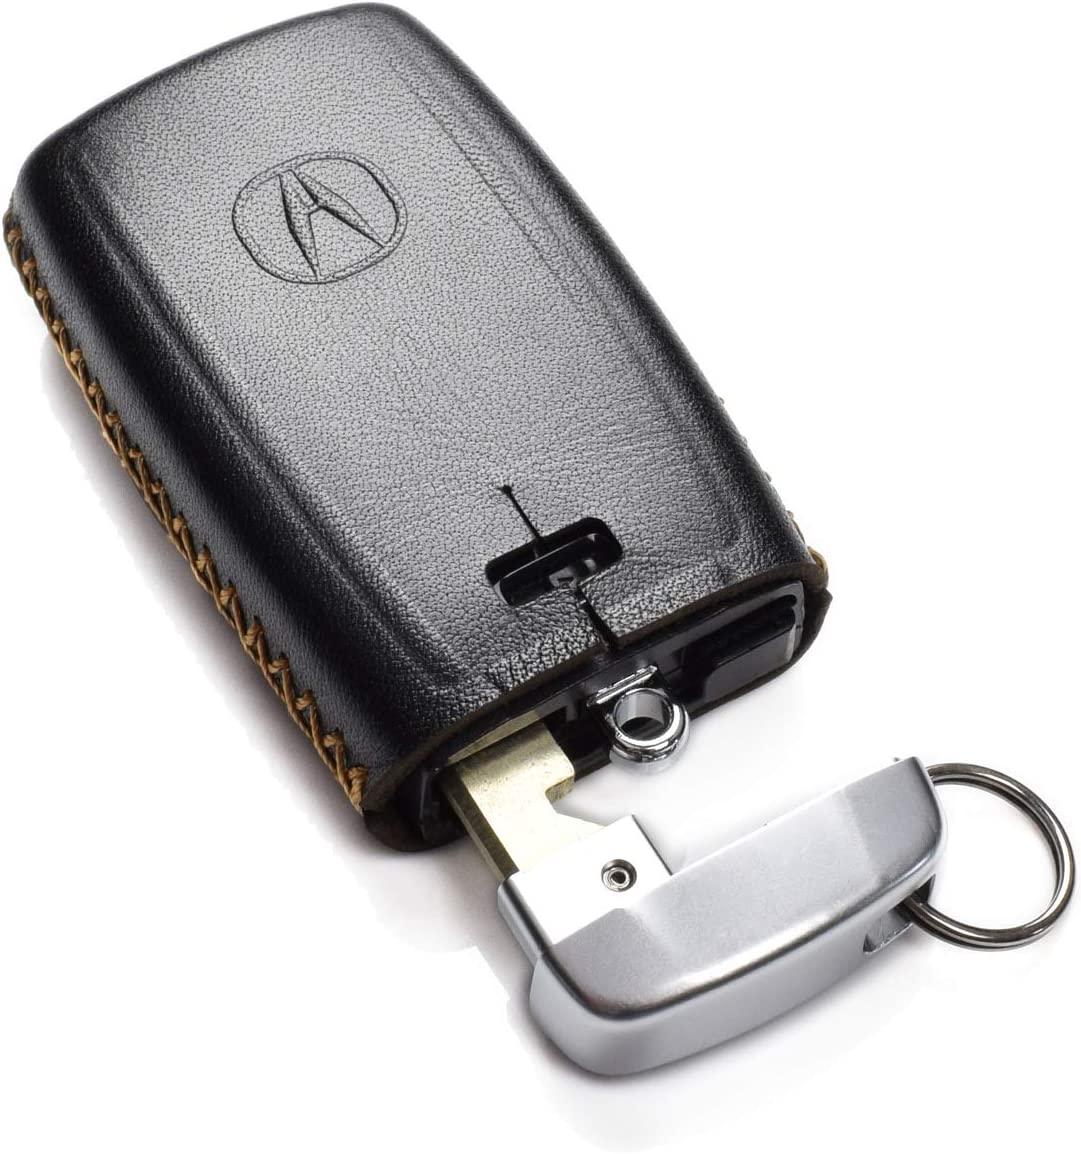 5-Button, Black Acura TLX Vitodeco Genuine Leather Smart Key Fob Case Cover Protector with Leather Key Chain for 2017-2020 Acura RDX Acura ILX Acura MDX Acura TSX